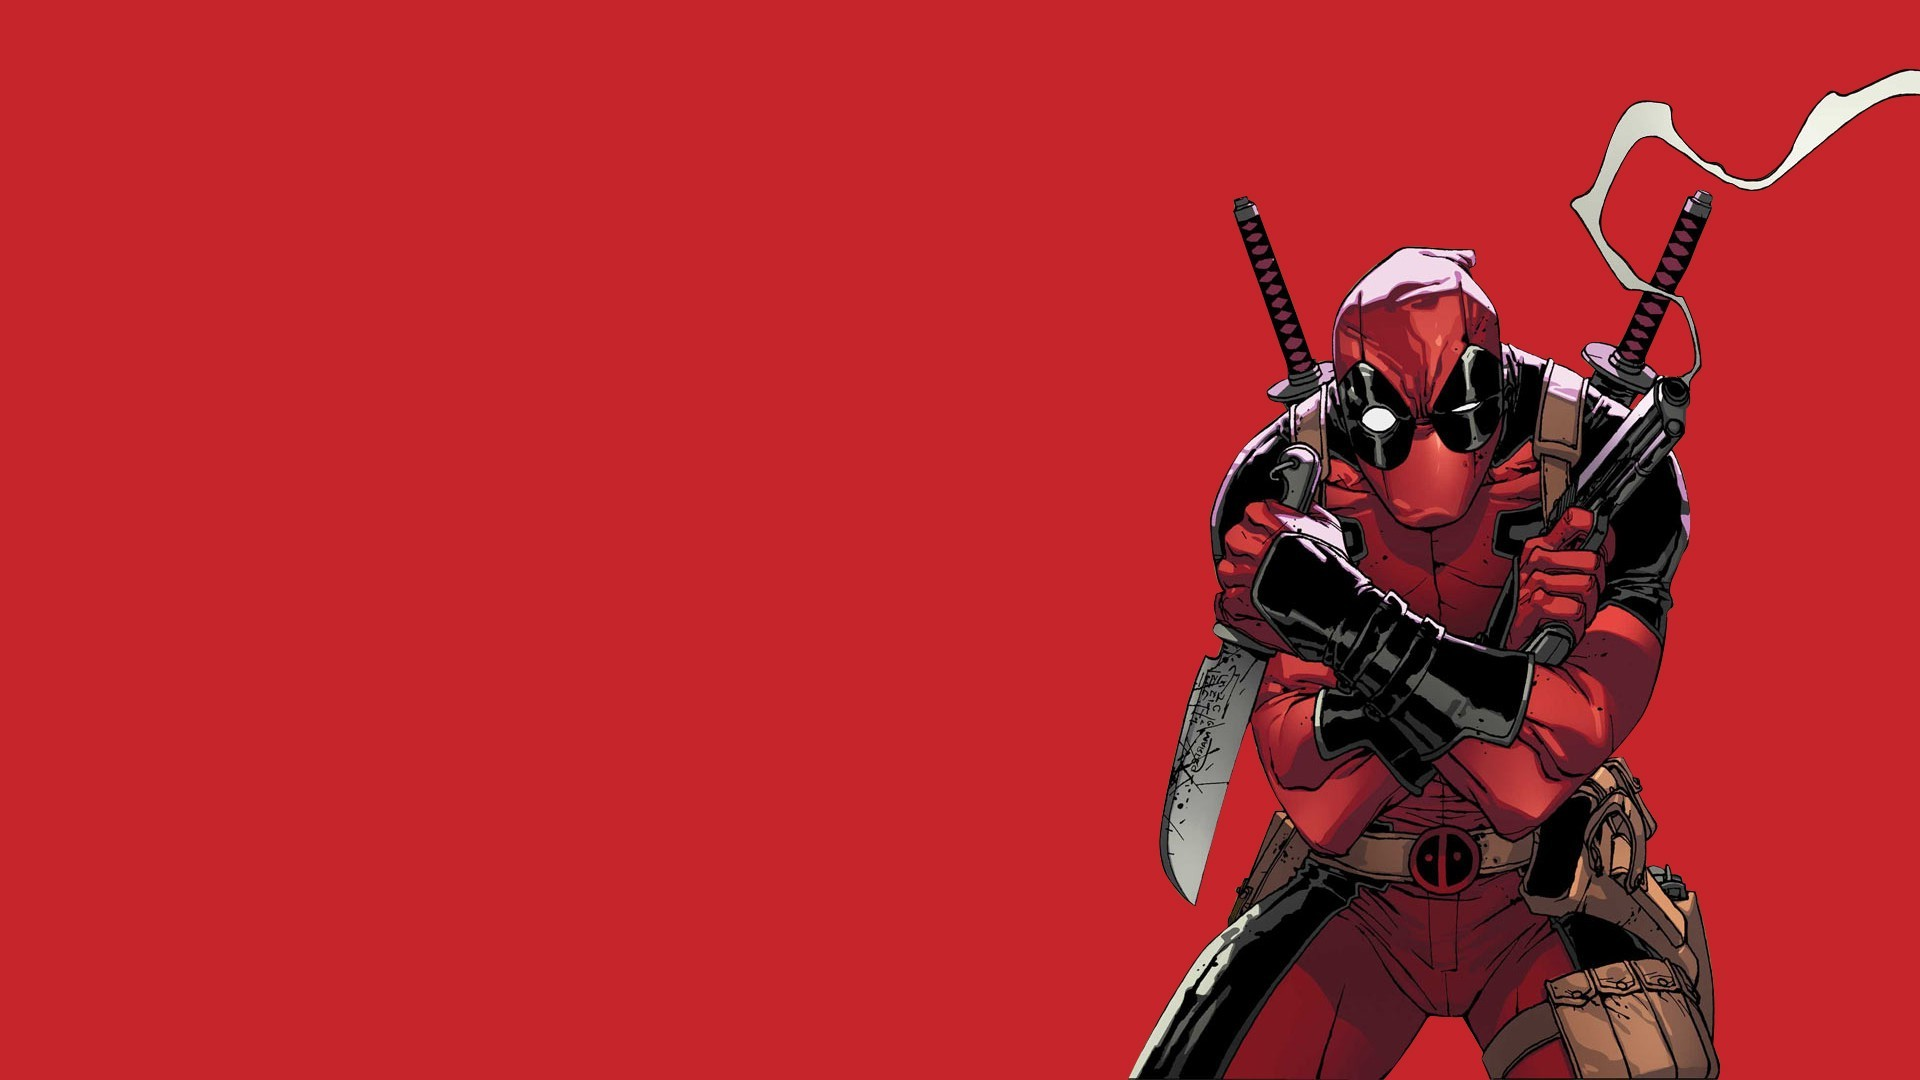 Deadpool Wallpapers HD Desktop and Mobile Backgrounds 1920x1080